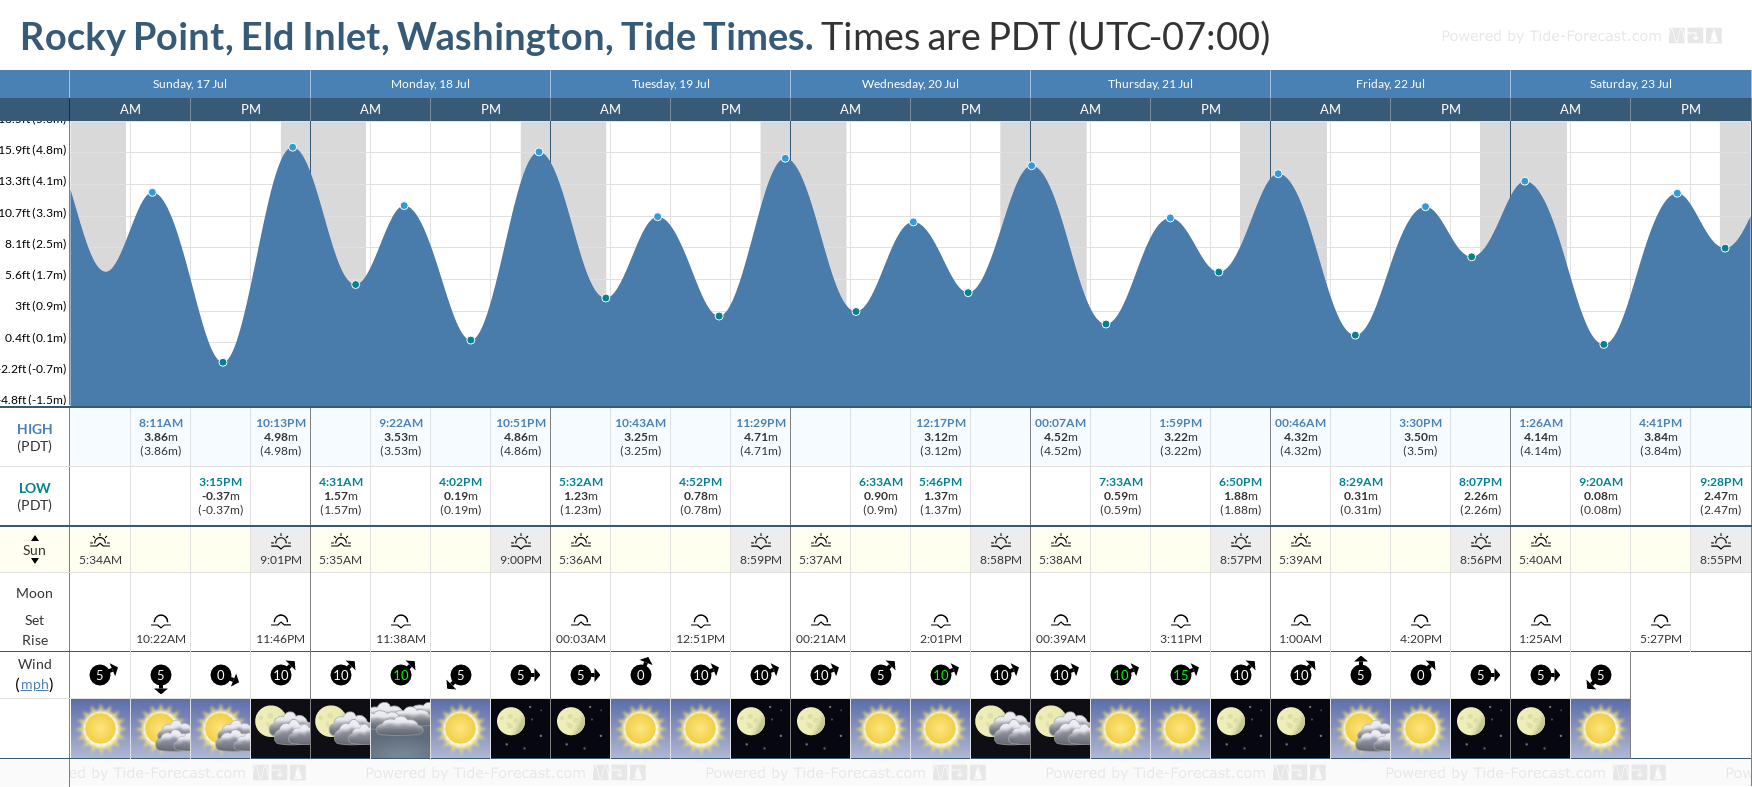 Rocky Point, Eld Inlet, Washington Tide Chart including high and low tide tide times for the next 7 days